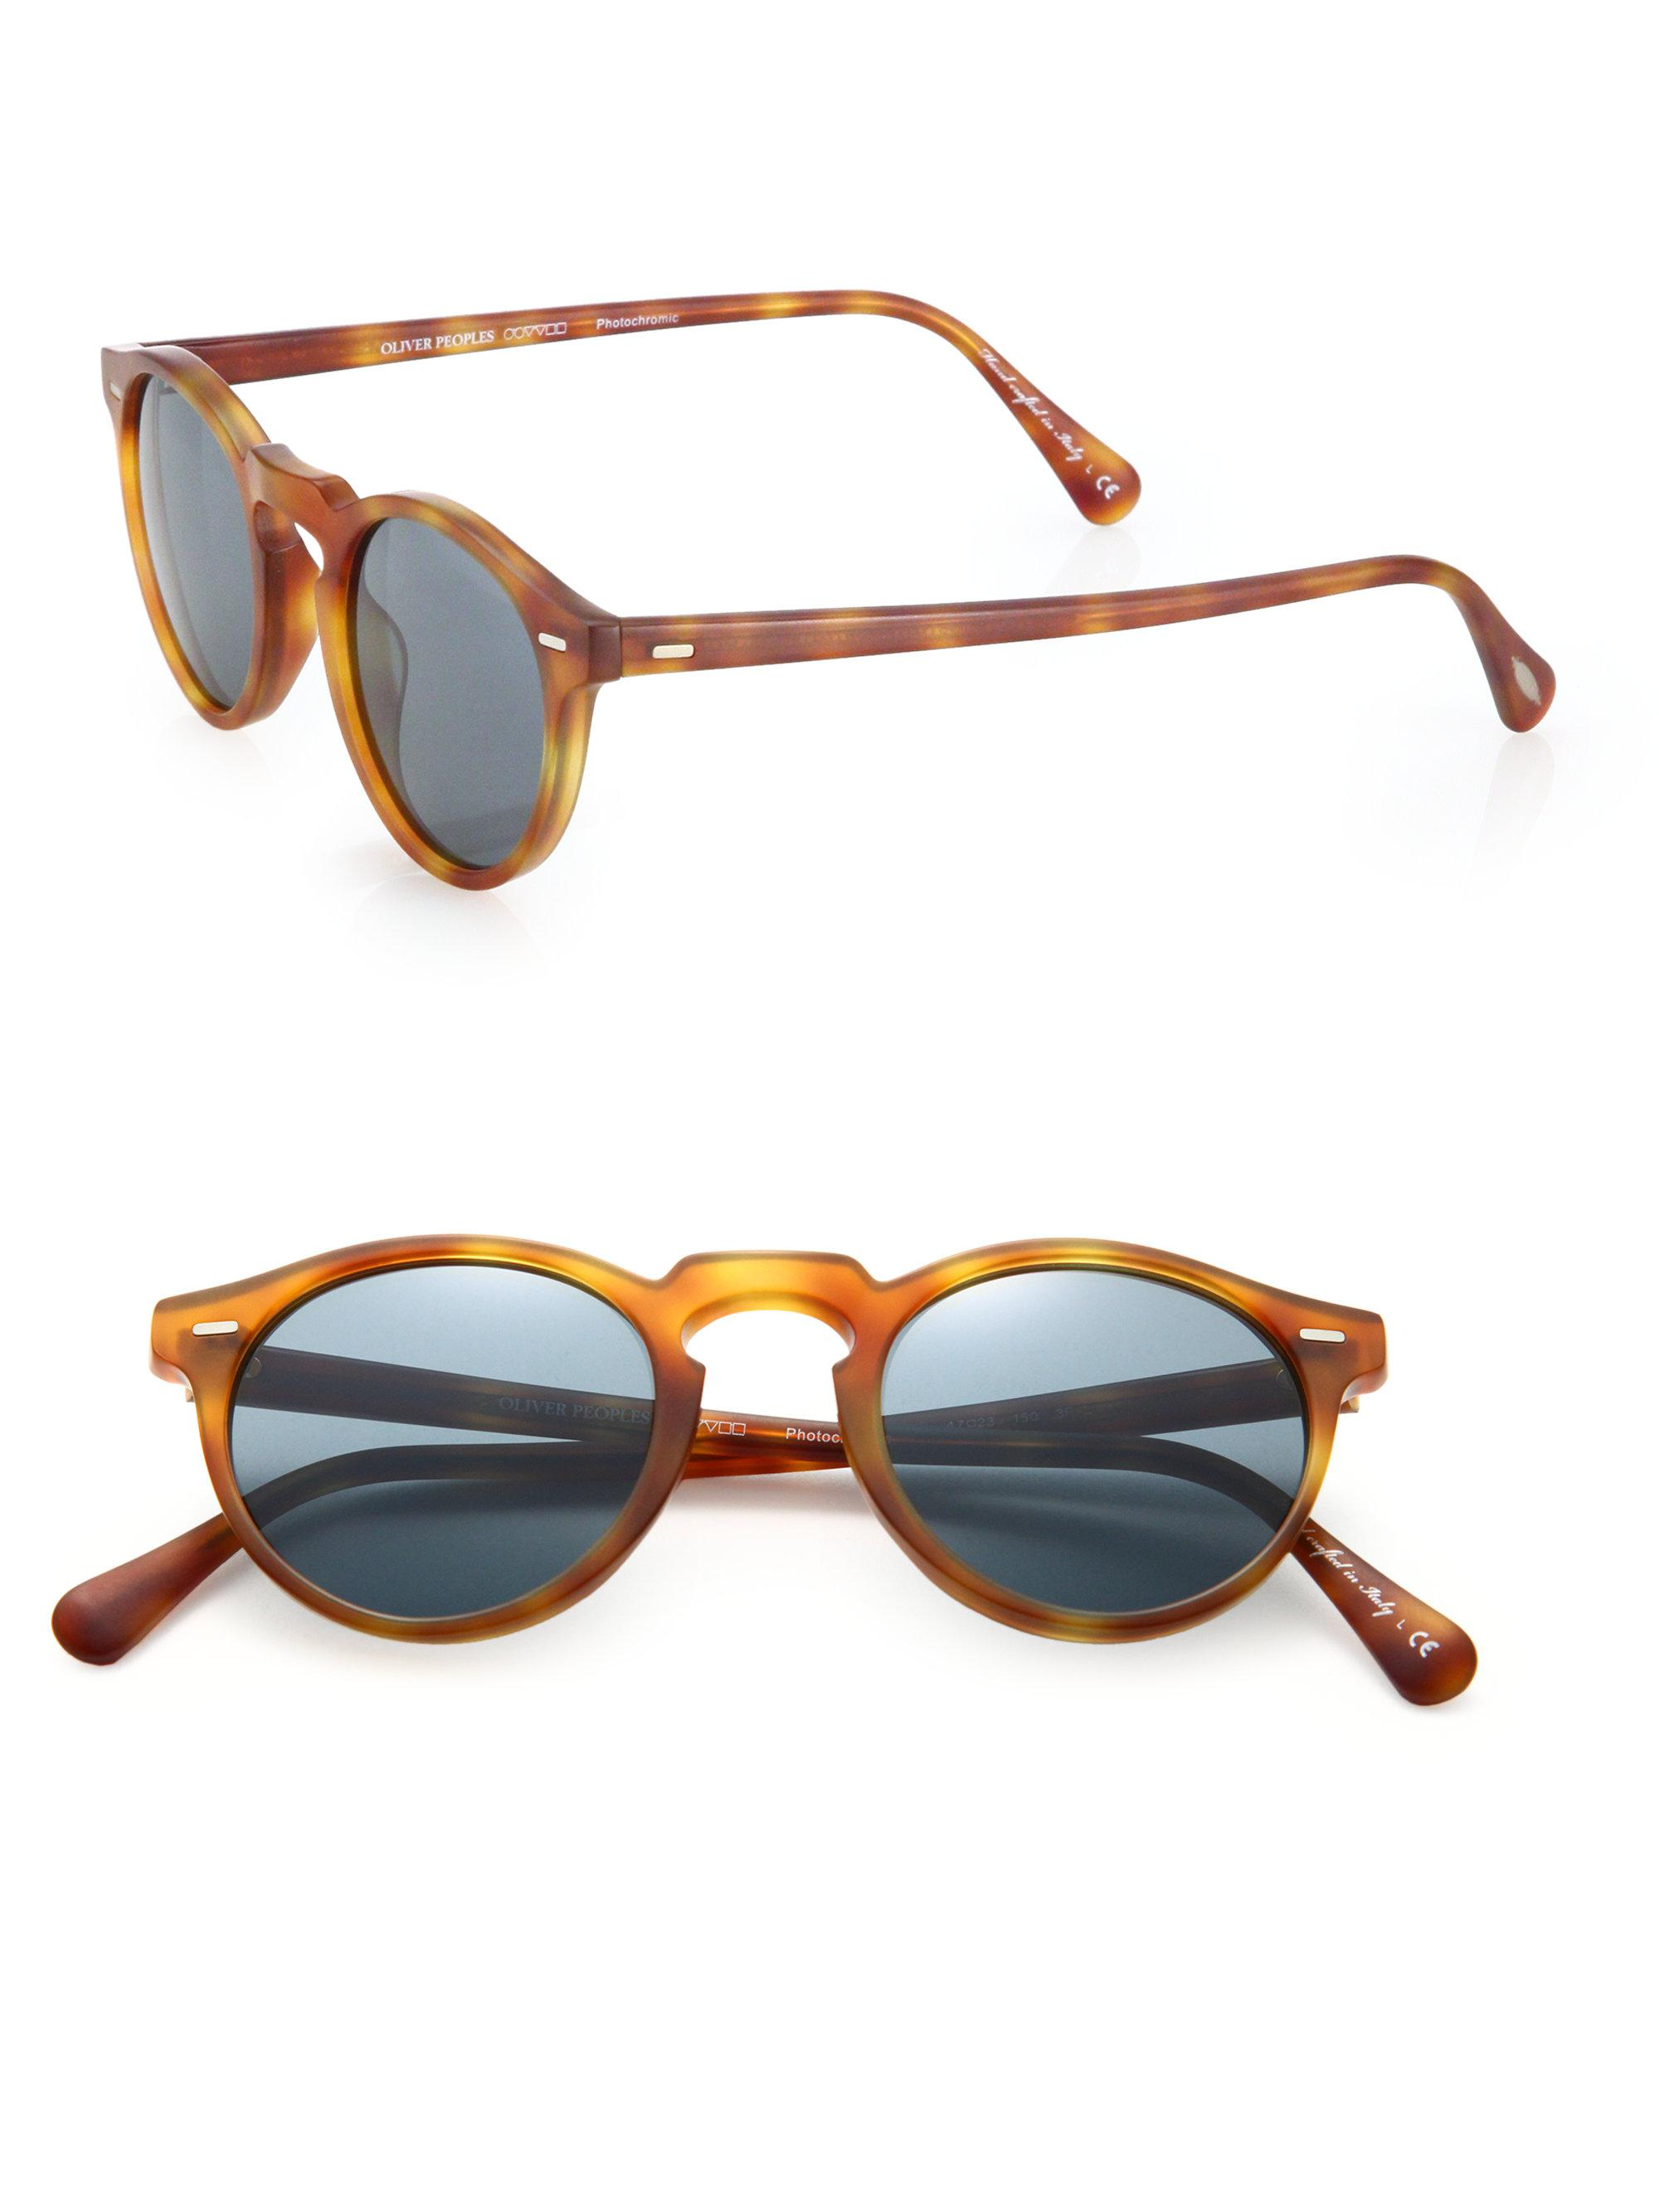 Gregory Peck Sunglasses  oliver peoples gregory peck sunglasses in blue for men lyst